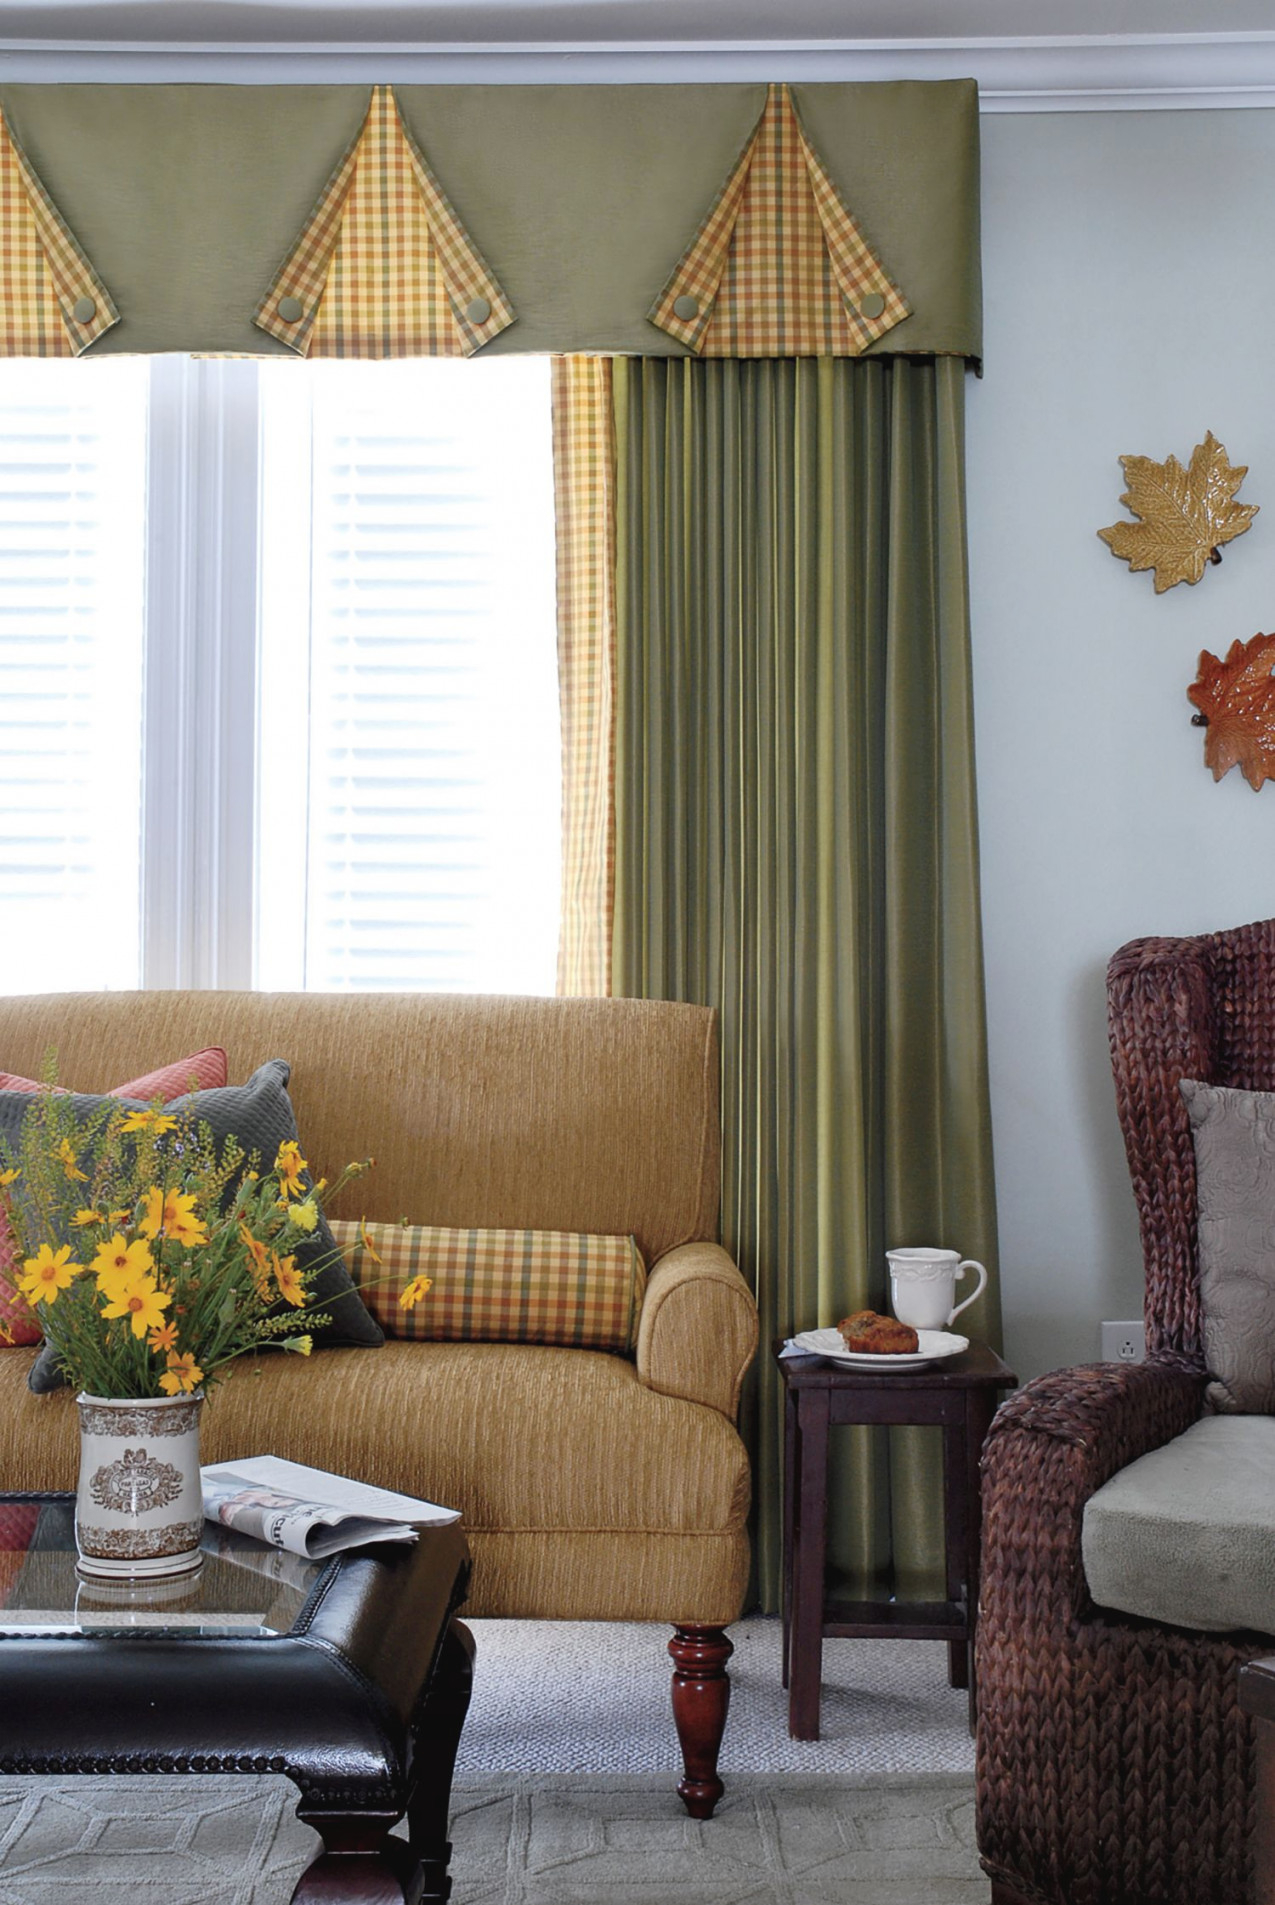 20 Best Living Room Curtain Ideas - Living Room Window with 13+ Unique Ideas For Fancy Curtains For Living Room